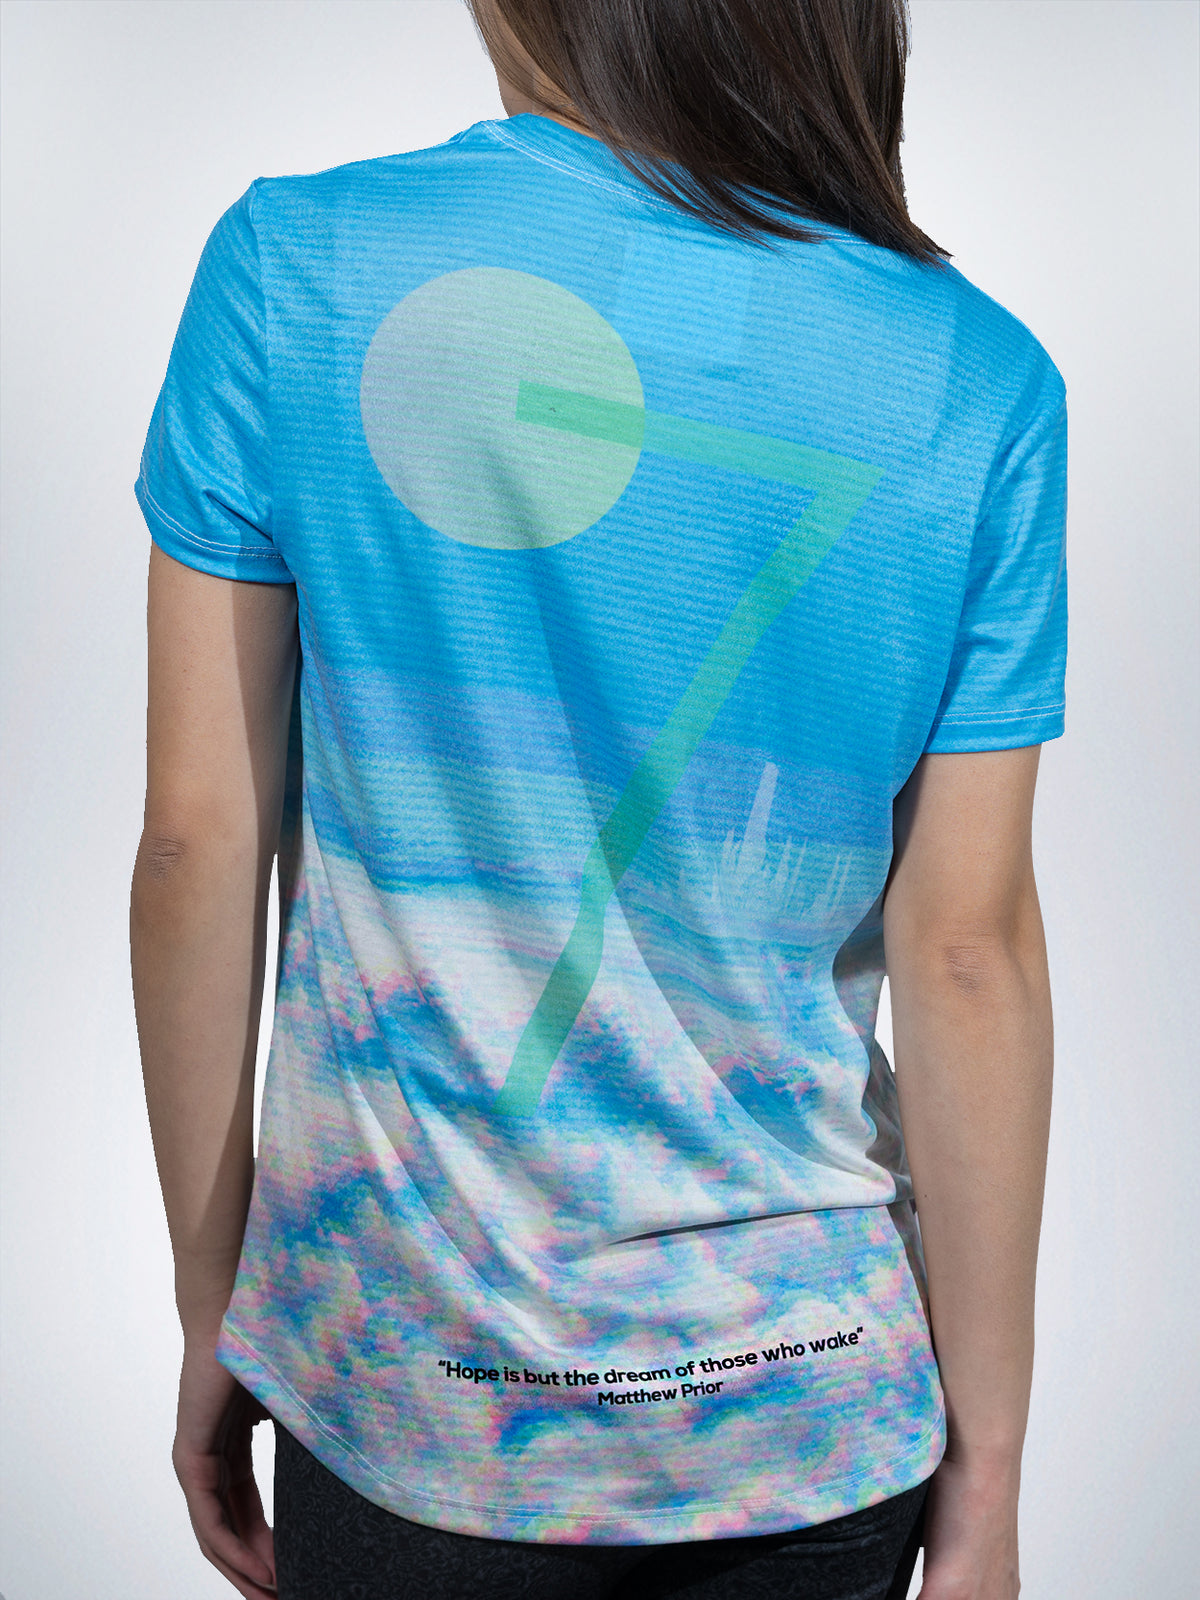 Wavy Clouds Xclusive Women Tees shirts tops retro EDM TRIPPY vapor wave